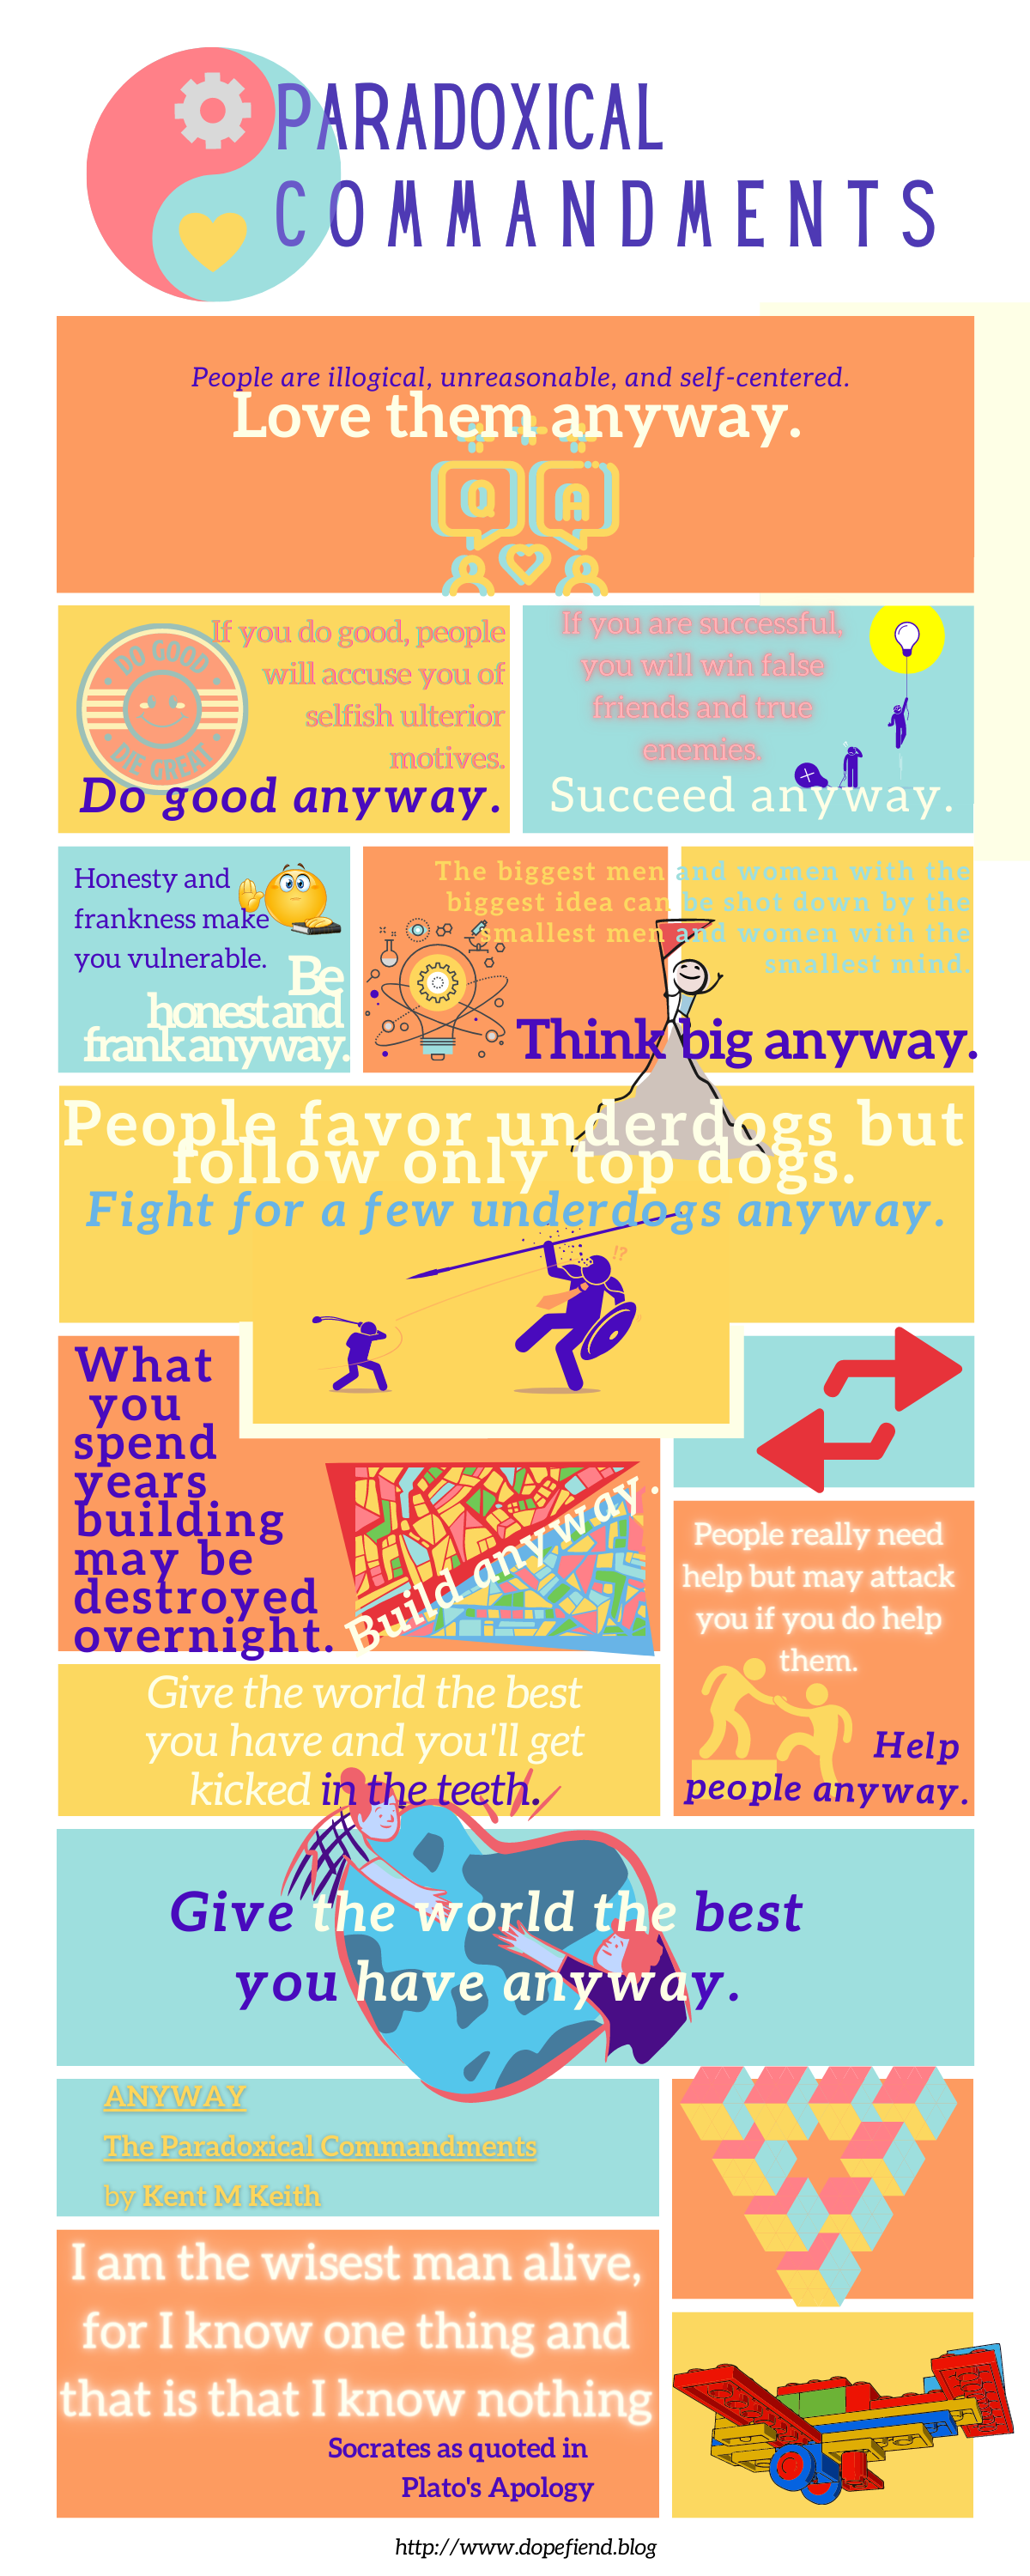 paradoxical commandments love them anyway, do good anyway, succeed anyway, do good anyway, be honest and frank anyway, think big anyway, fight for a few underdogs anyway, build anyway, help people anyway, and give the world the best you have anyway.